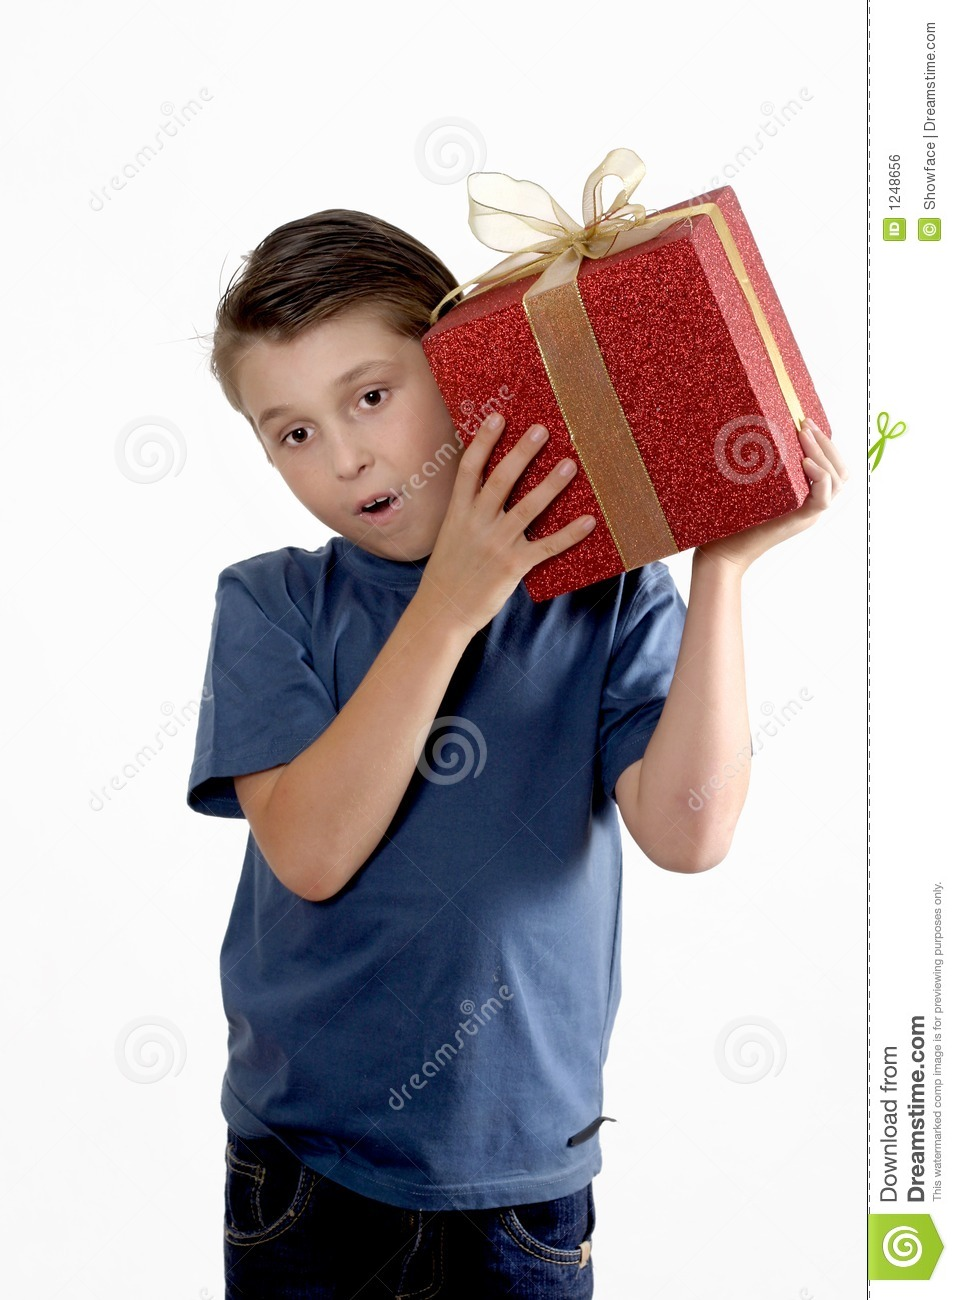 Child Shaking A Wrapped Present Royalty Free Stock Image ...